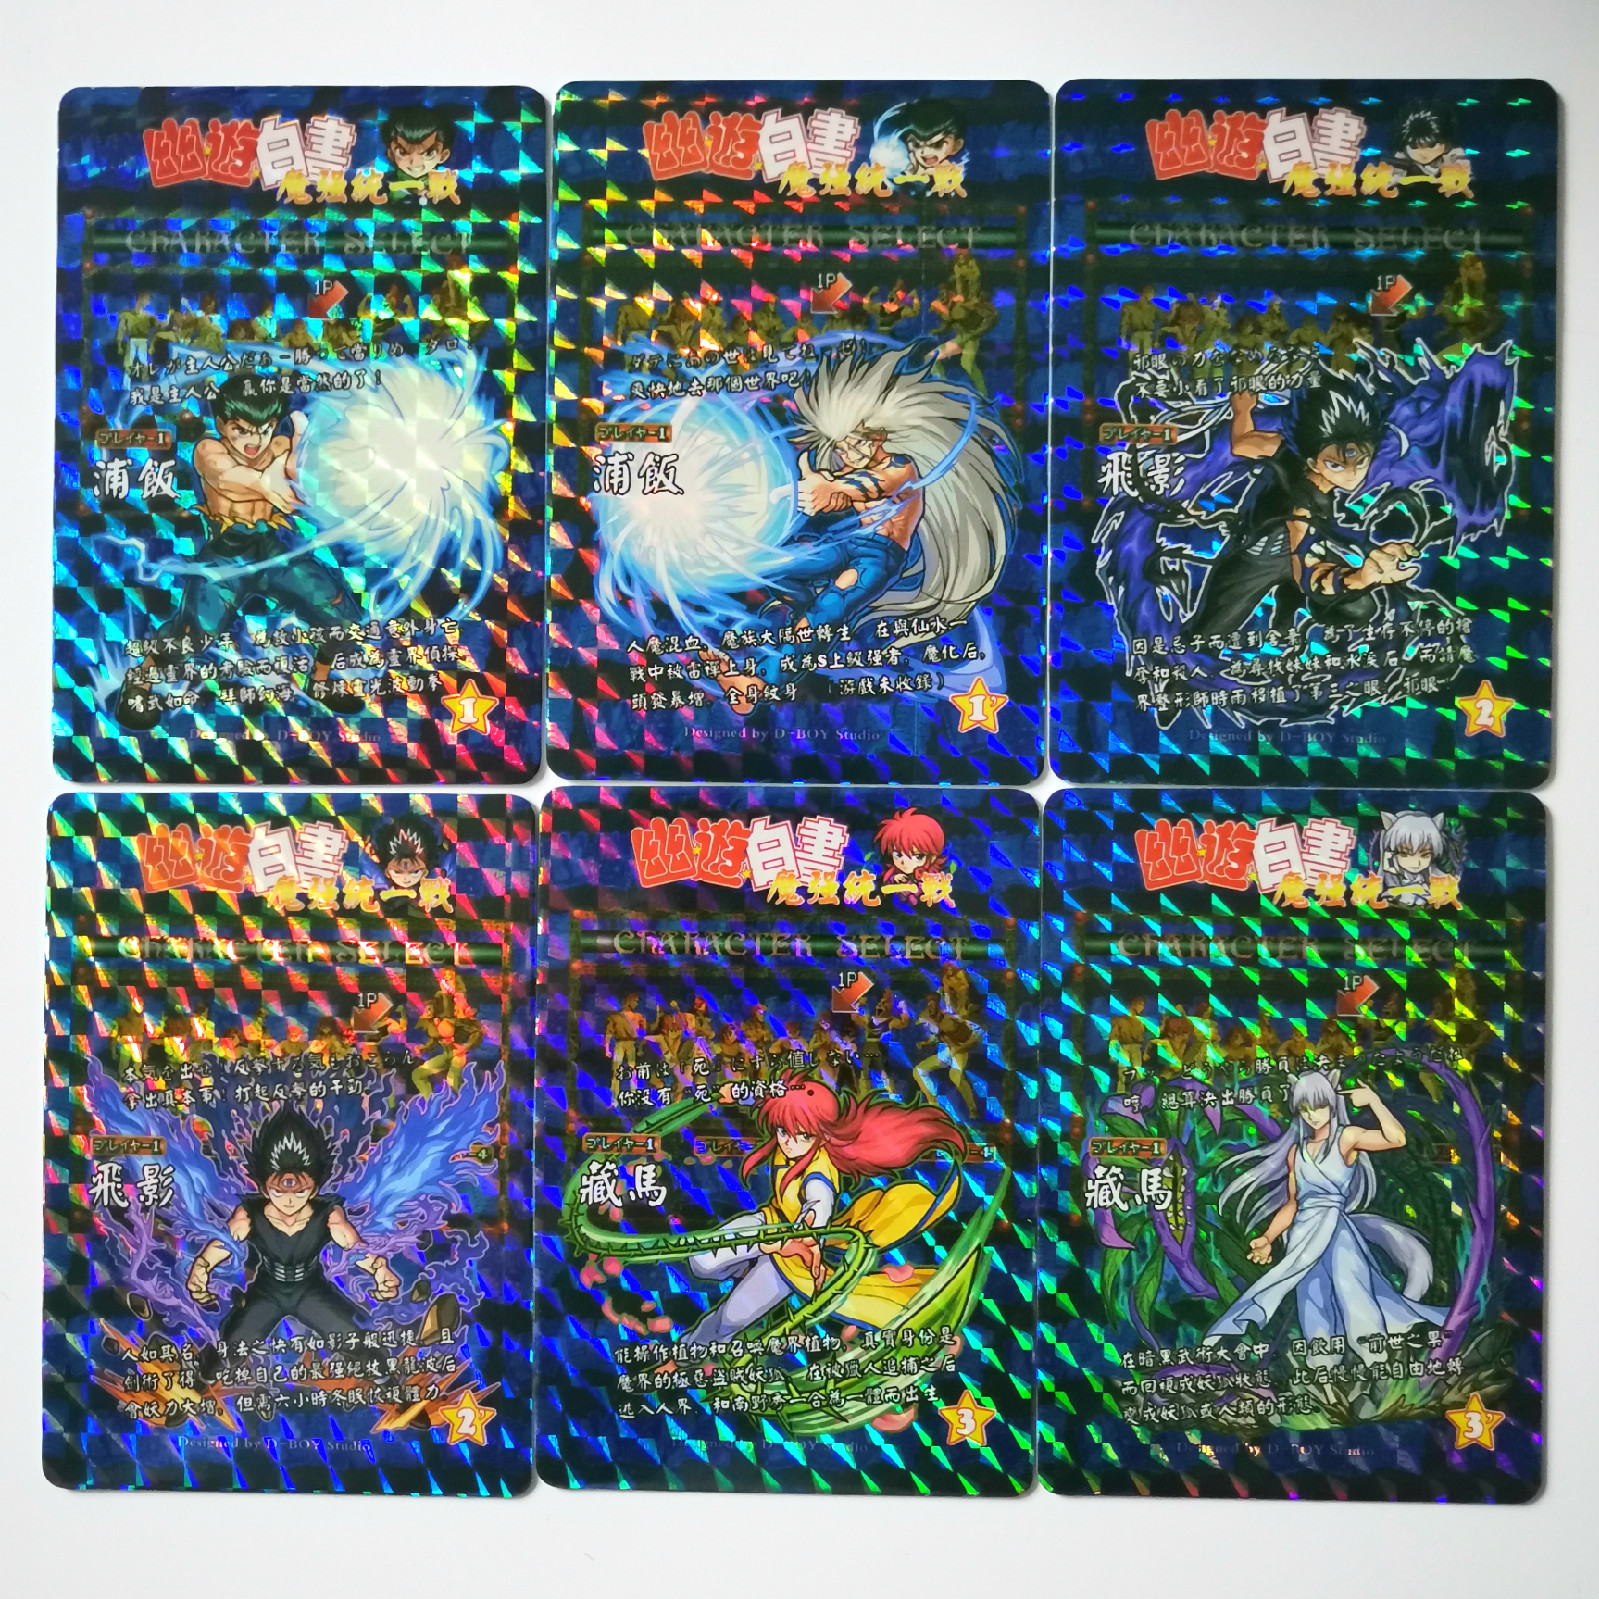 Permalink to 15pcs/set YuYu Hakusho MD Toys Hobbies Hobby Collectibles Game Collection Anime Cards